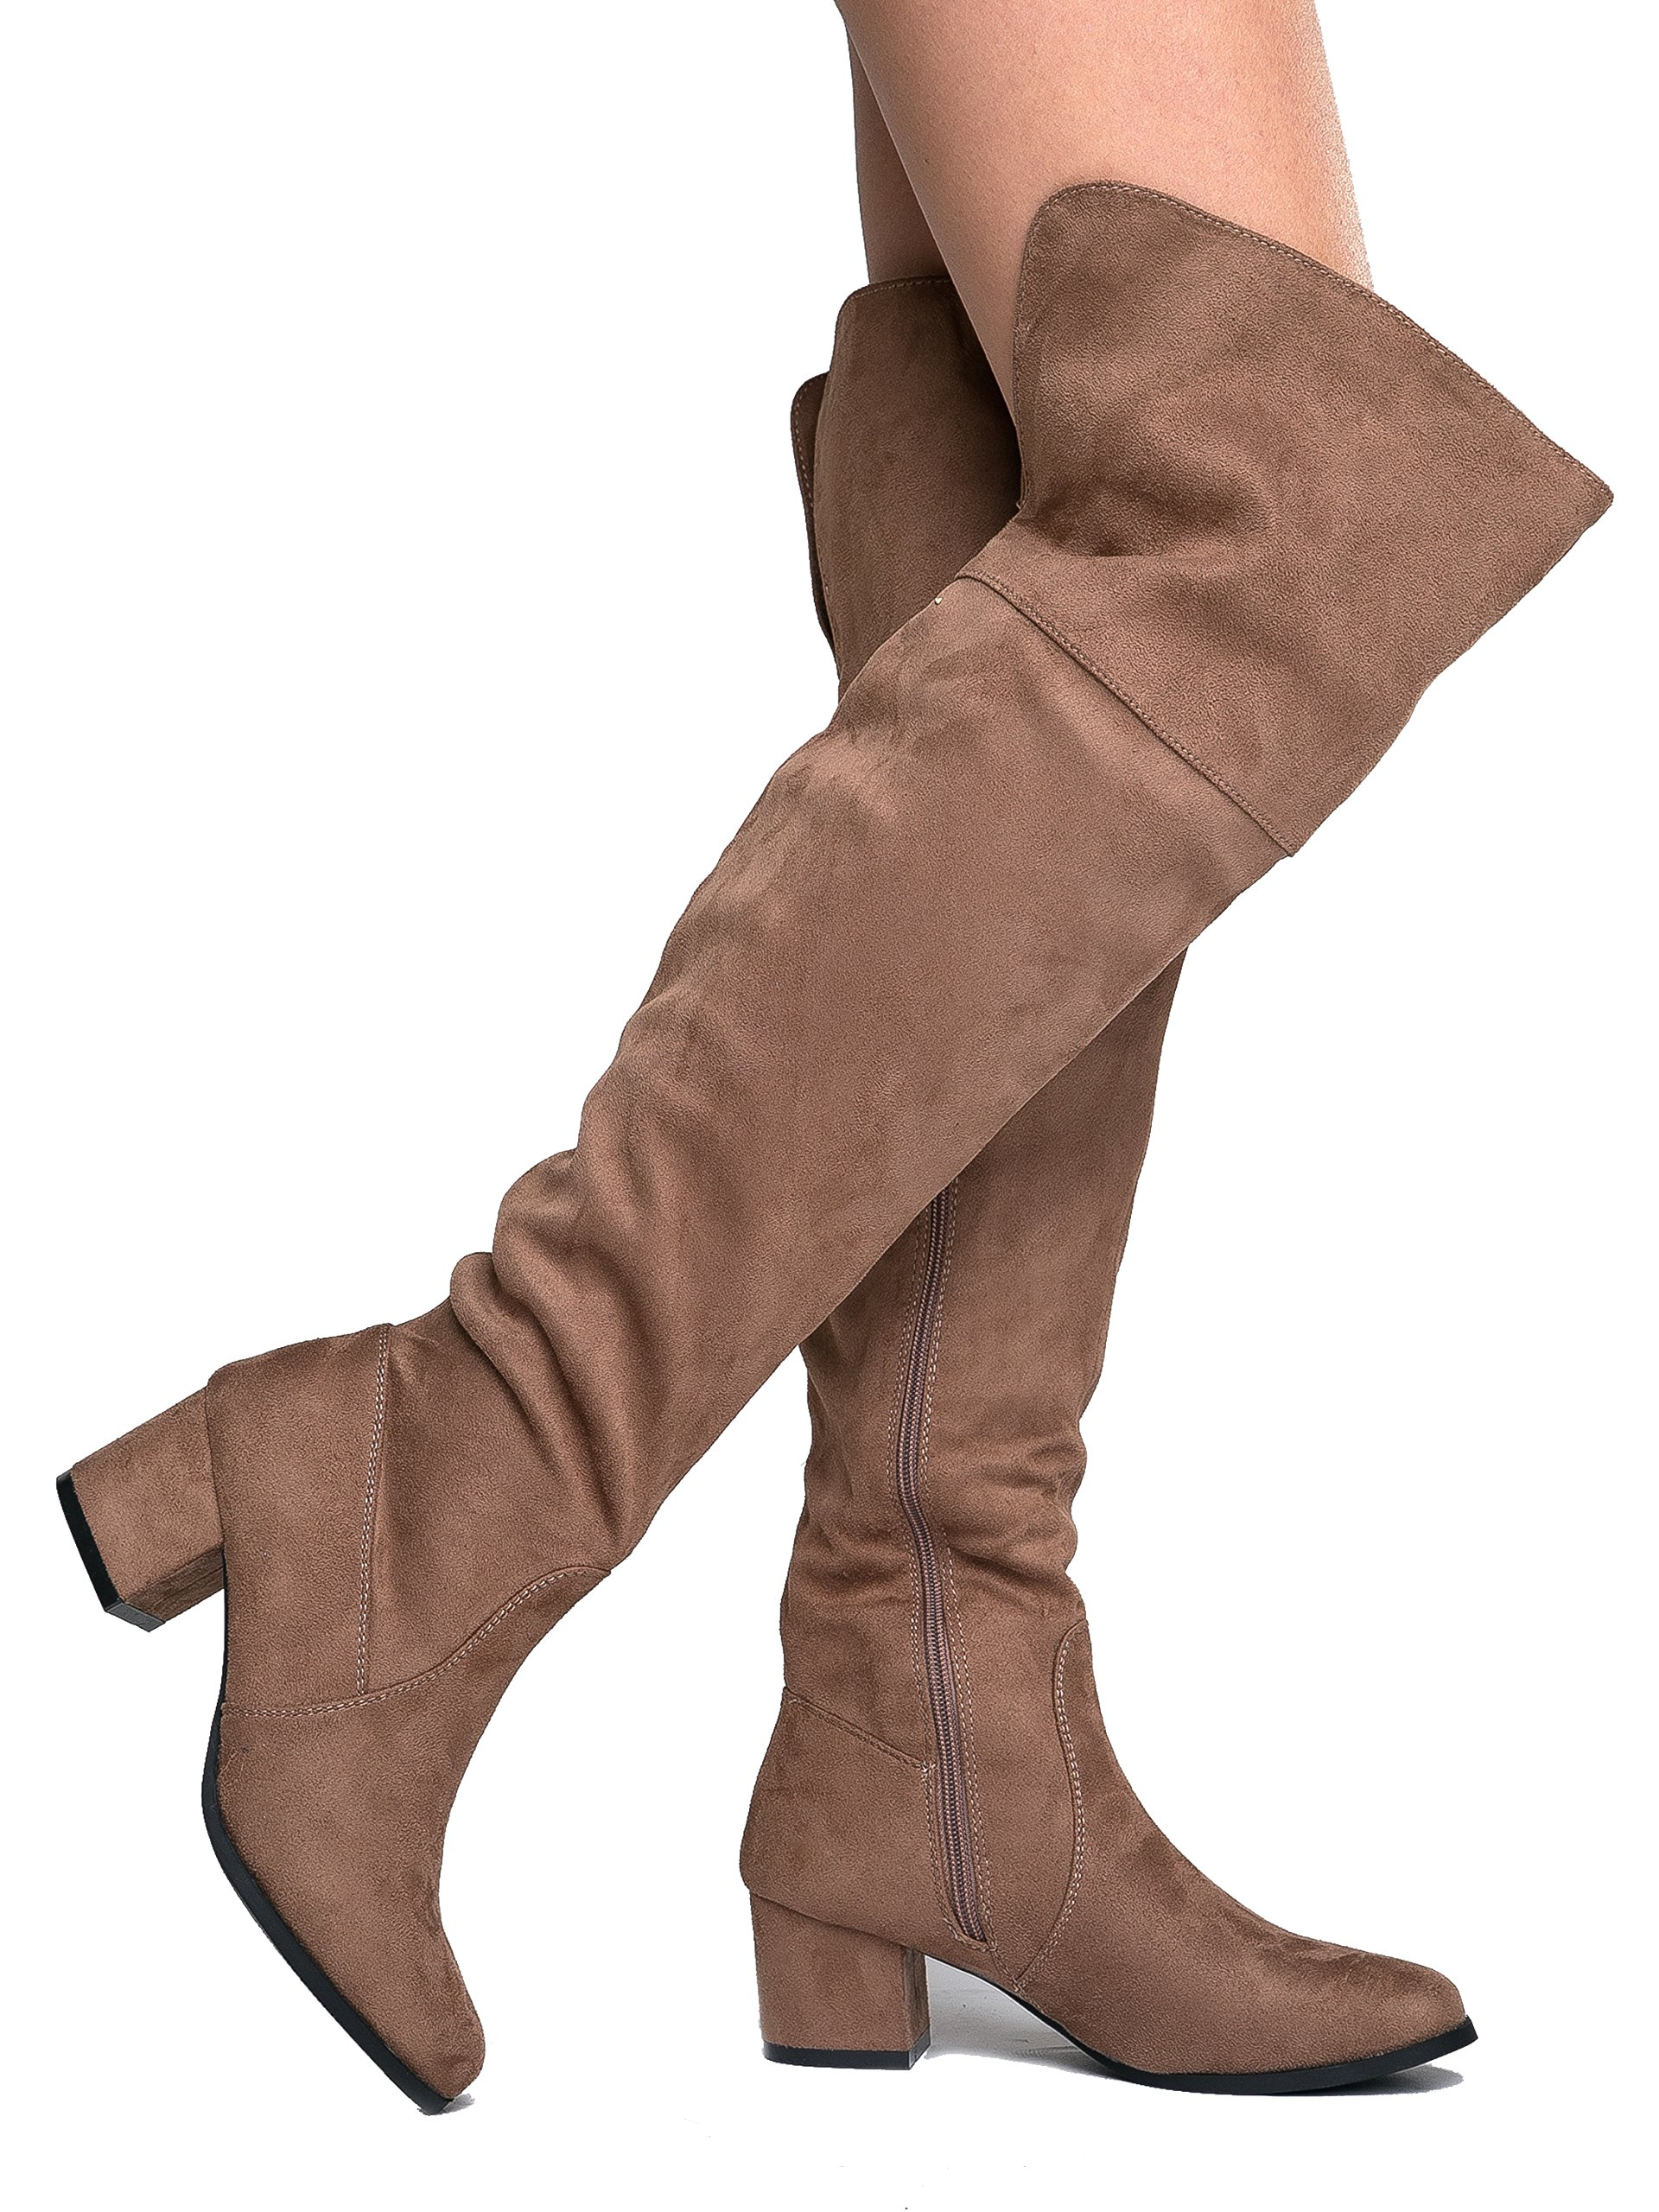 J. Adams Low Heel Over The Knee Boot, Taupe Suede, 10 B(M) US